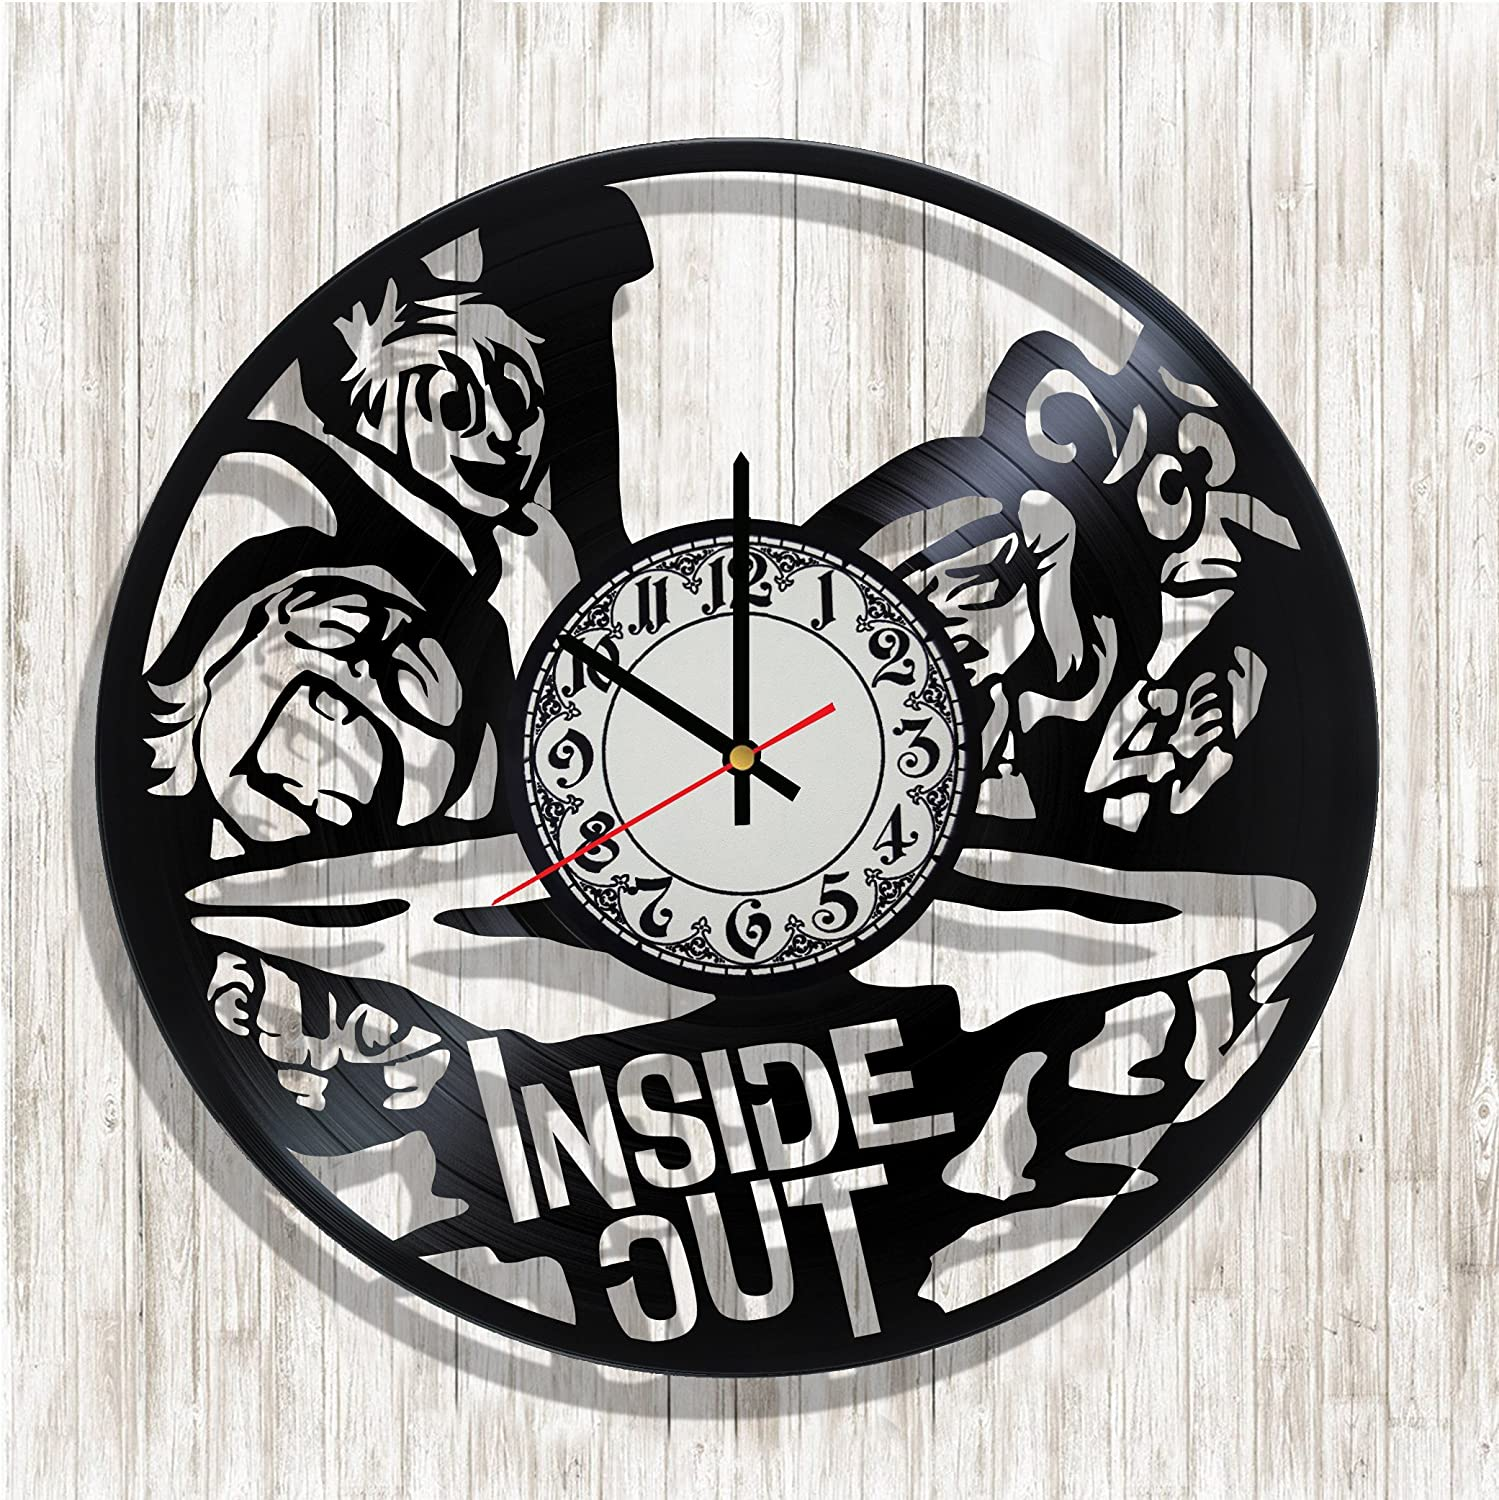 Amazon Com Design Wall Clock Inside Out Made From Real Vinyl Record Inside Out Decal Inside Out Poster Best Gift For Inside Out Fans Design Art Wall Decor Home Kitchen